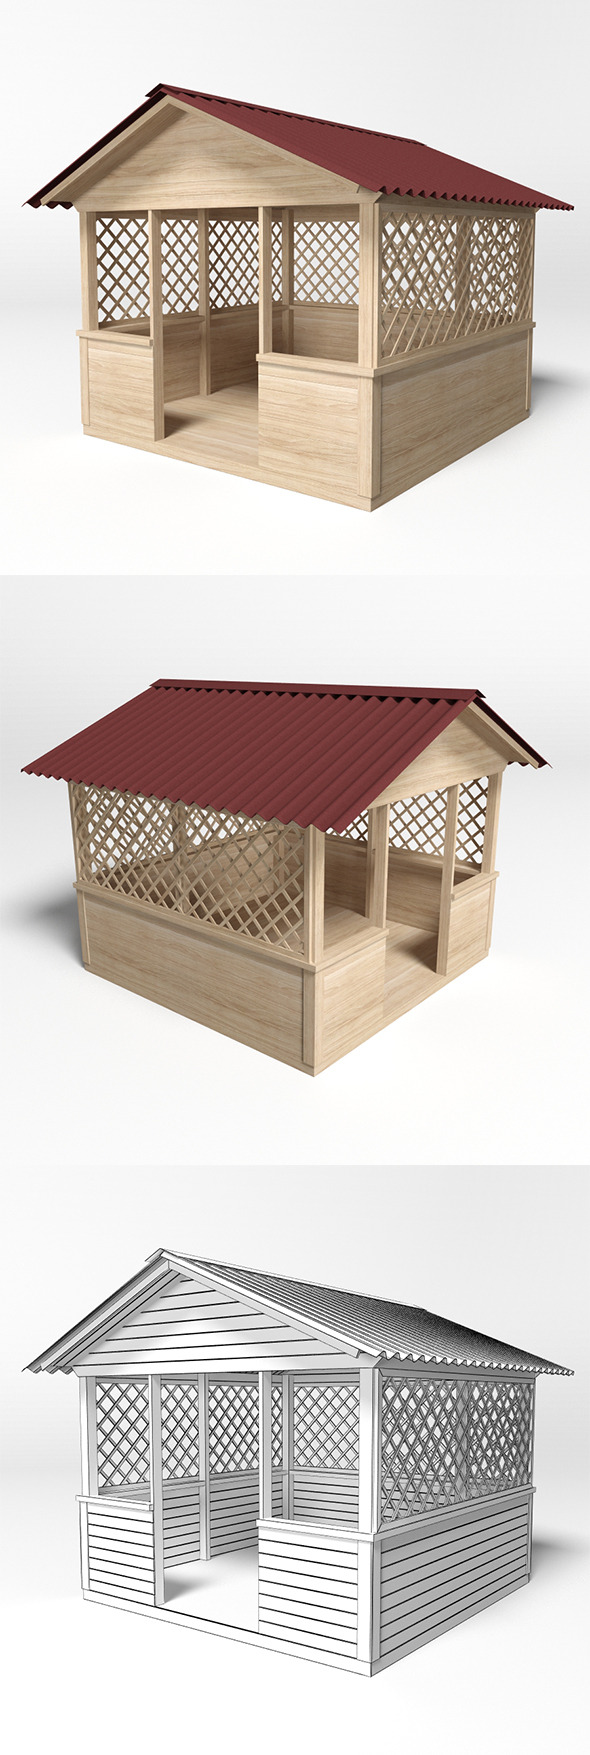 Gazebo 5 - 3DOcean Item for Sale